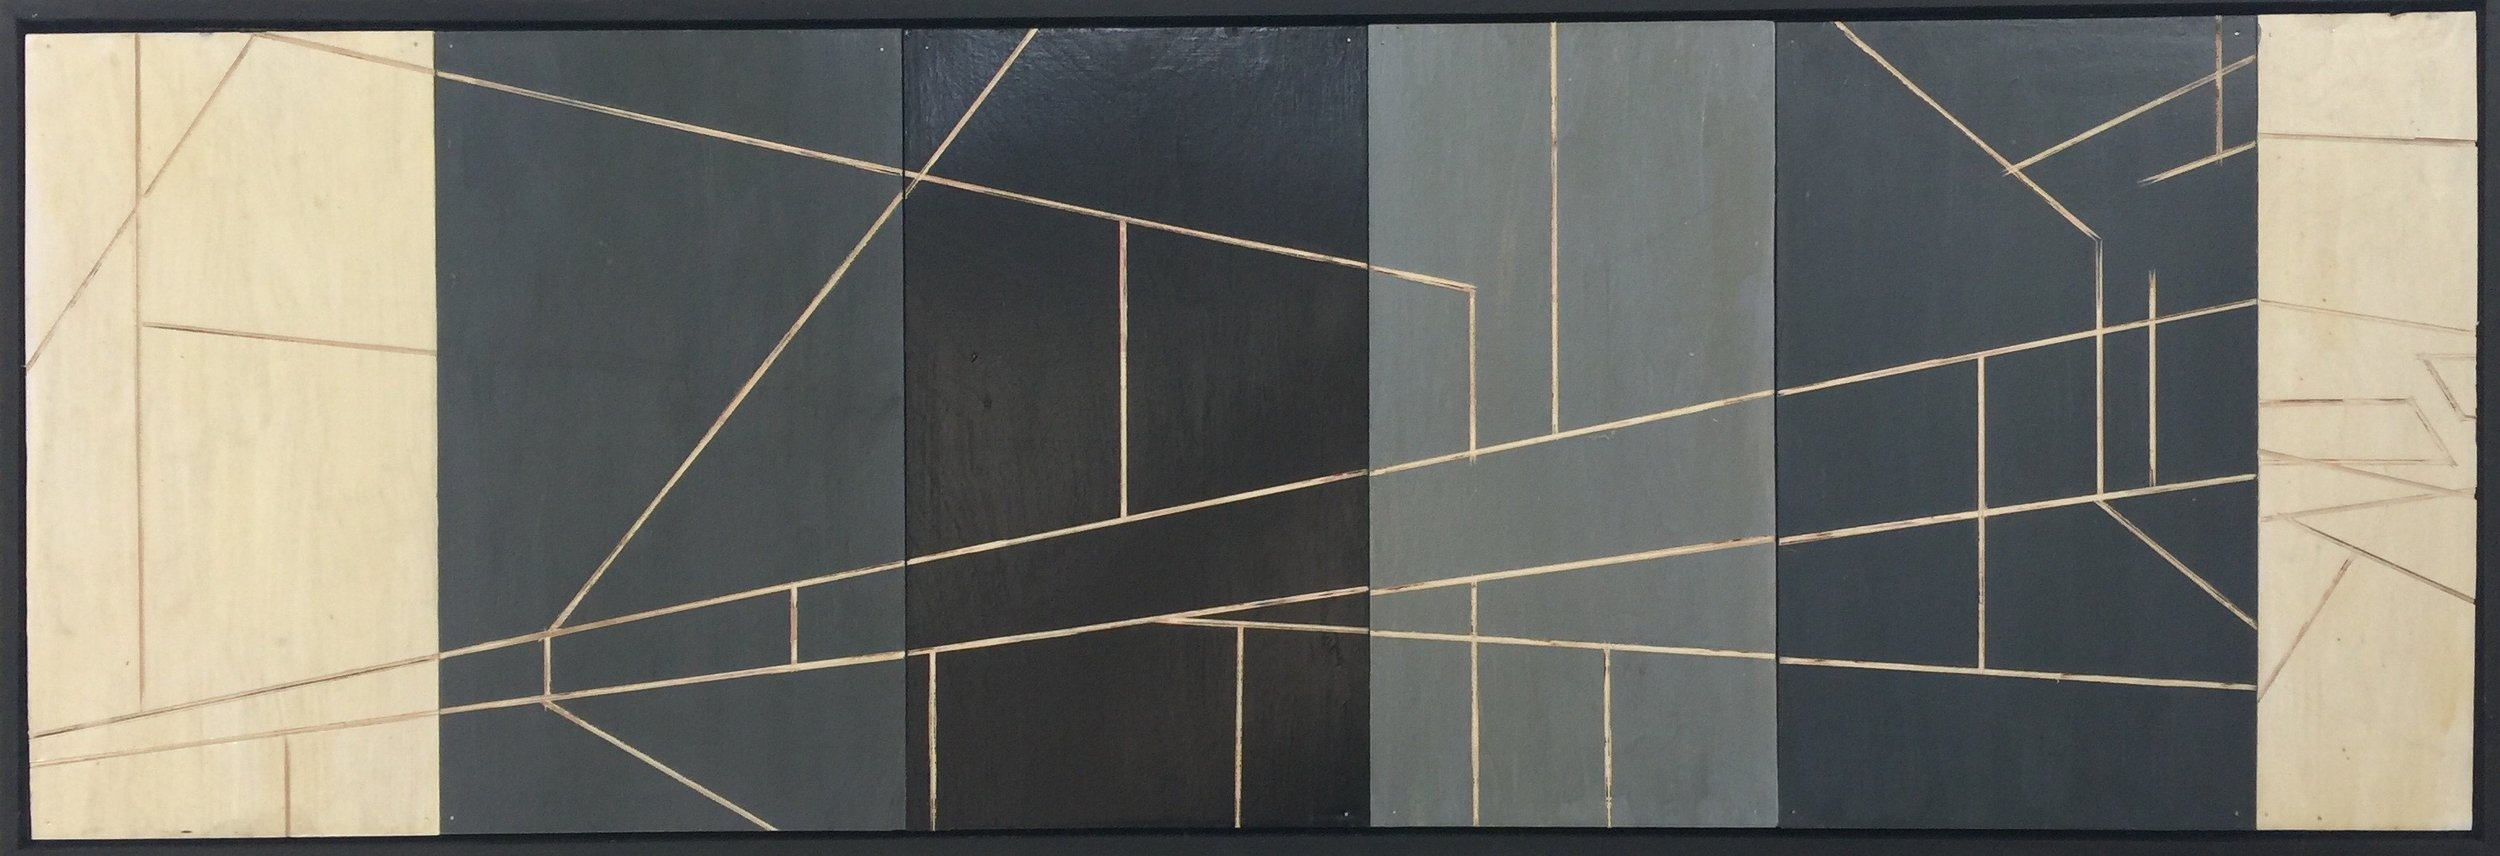 Composition on Panel, 2017, oil on incised board, 49.5 x 175.8 in, $3,200